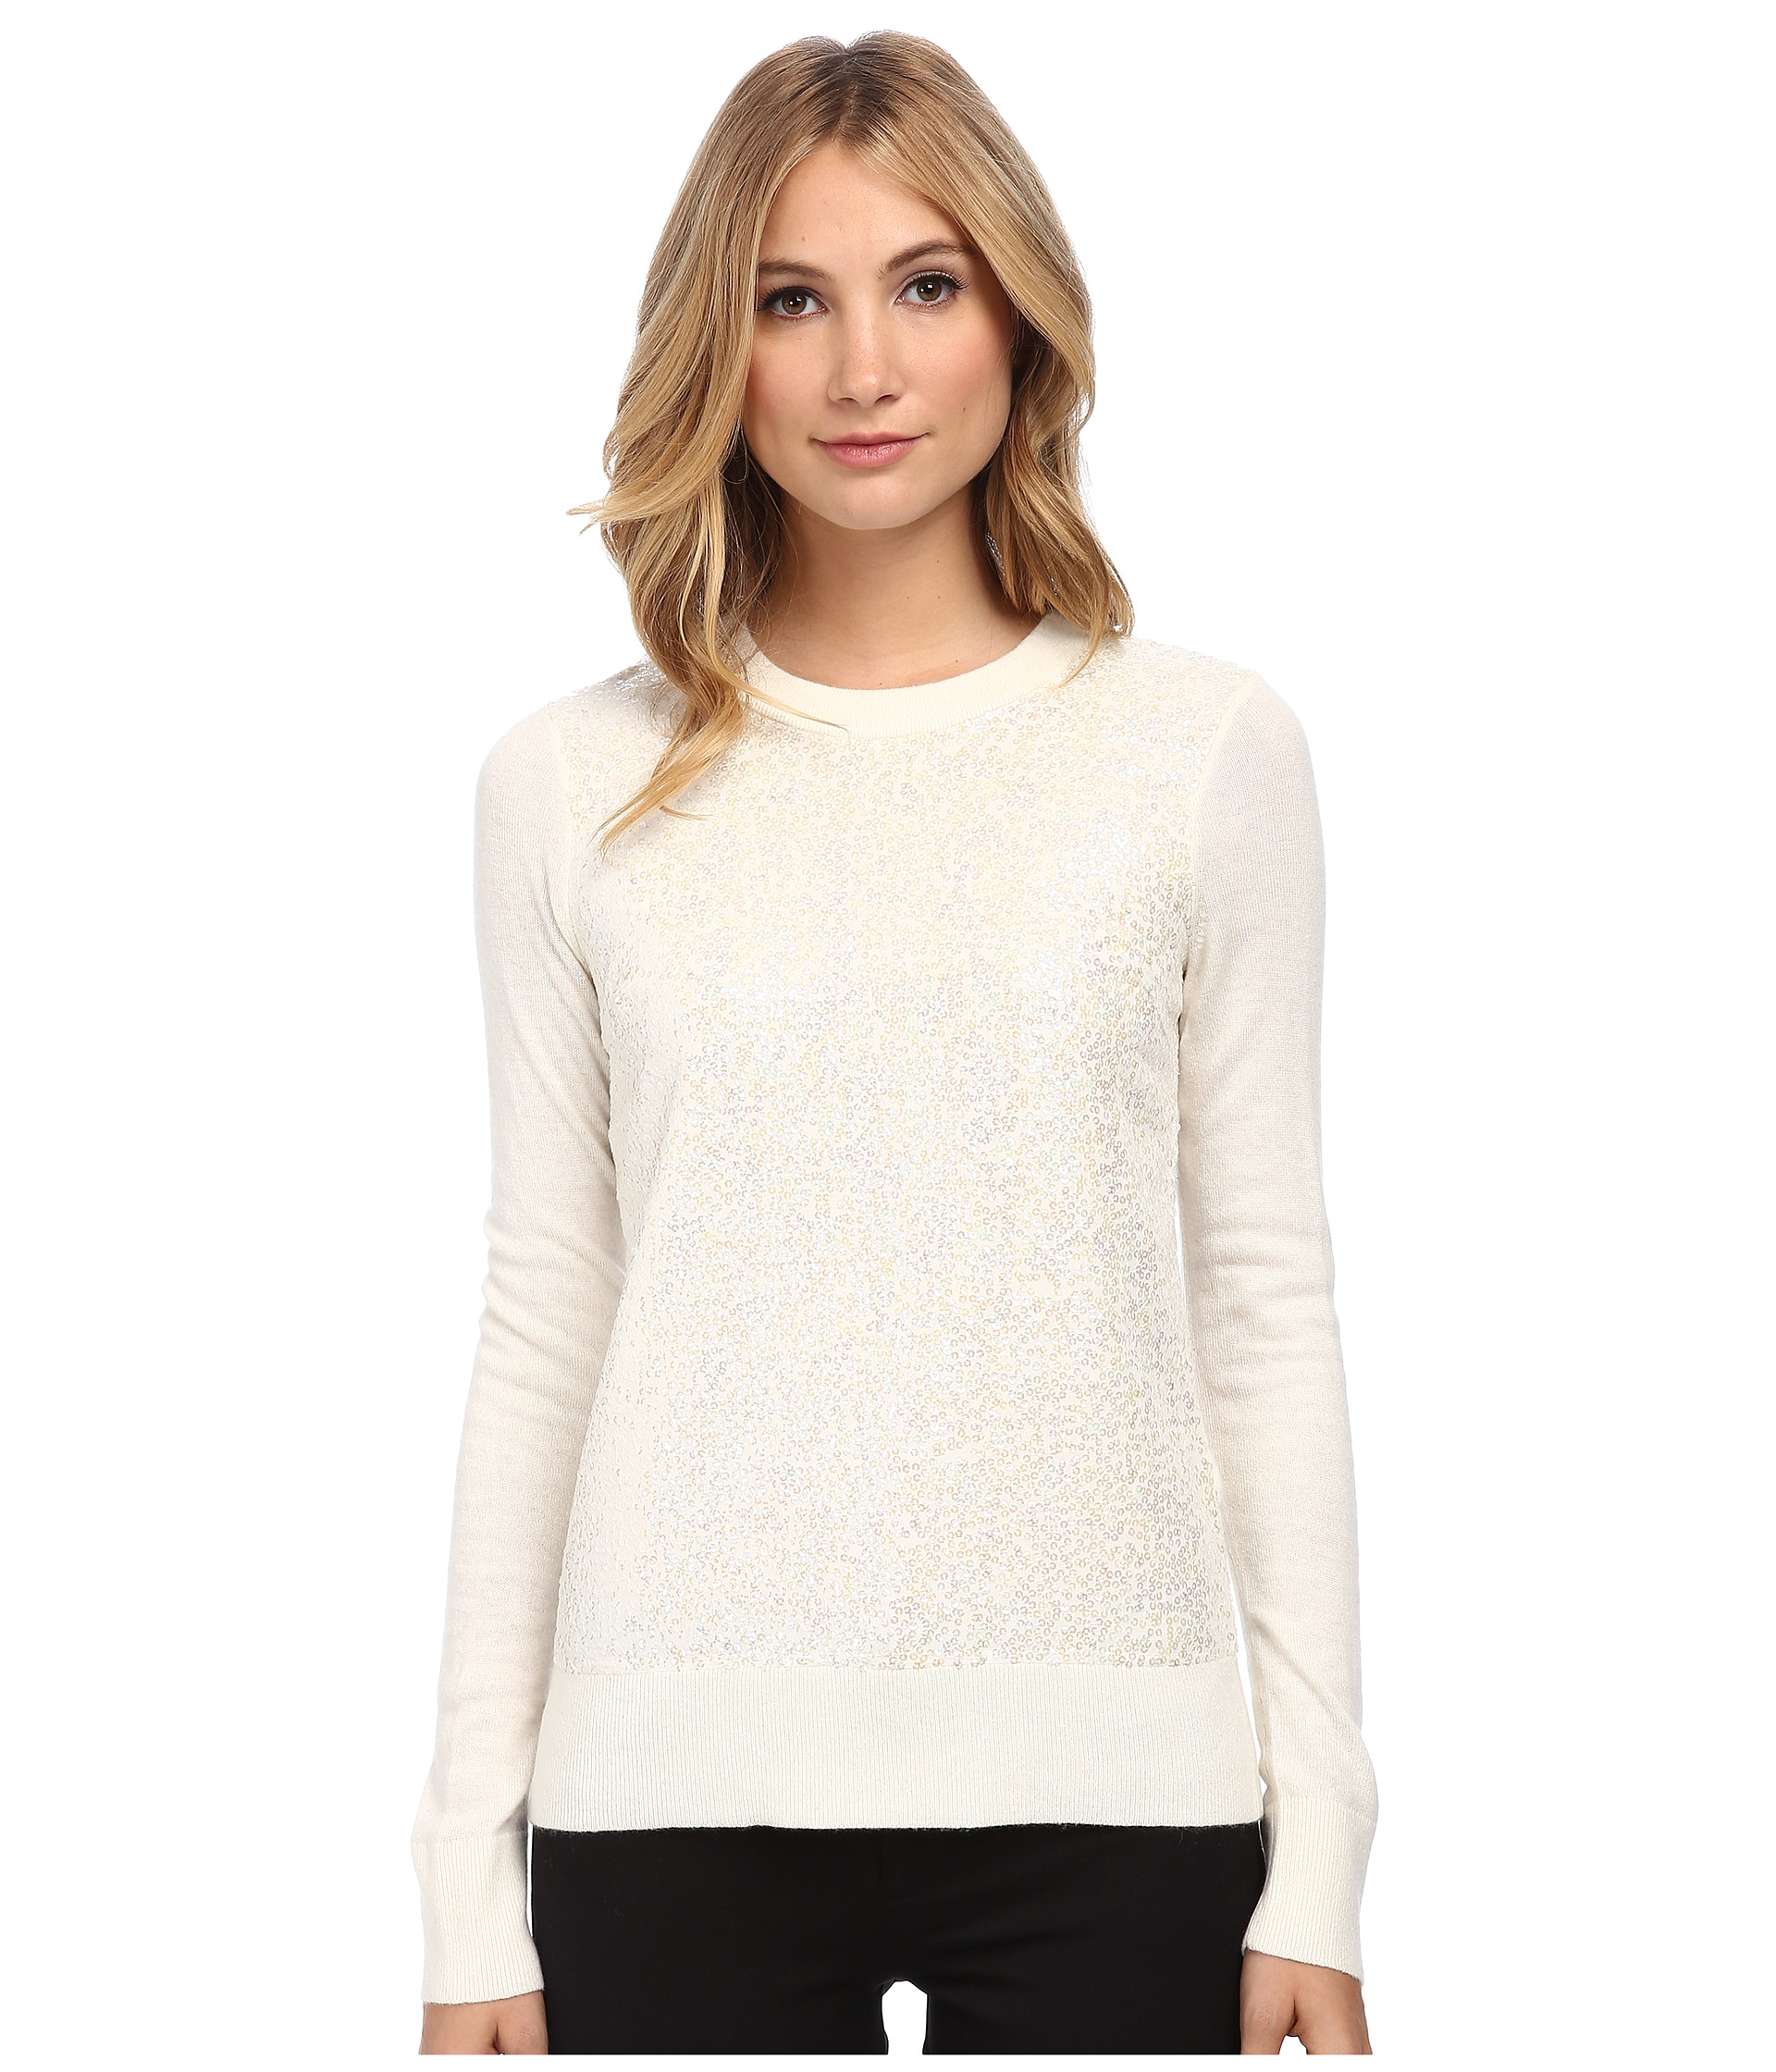 Kate spade new york Fluffy Wool Sequin Sweater in Natural | Lyst